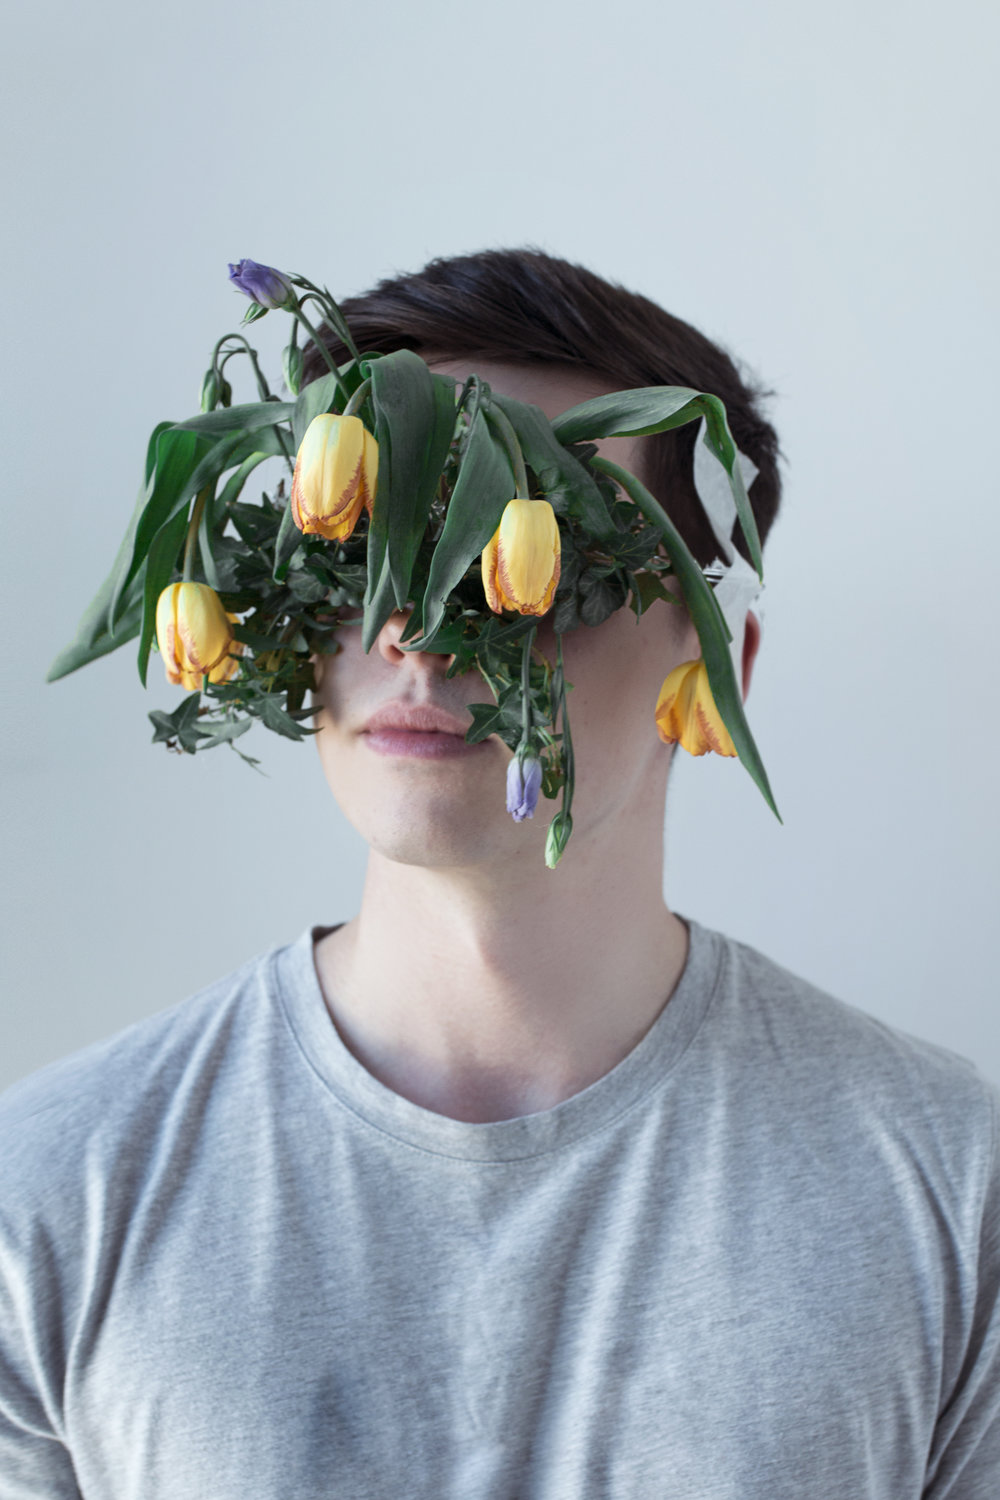 fragility - The series emphasises a universal connection of man to nature. Using florals to mask the dominant facial features of the male subject